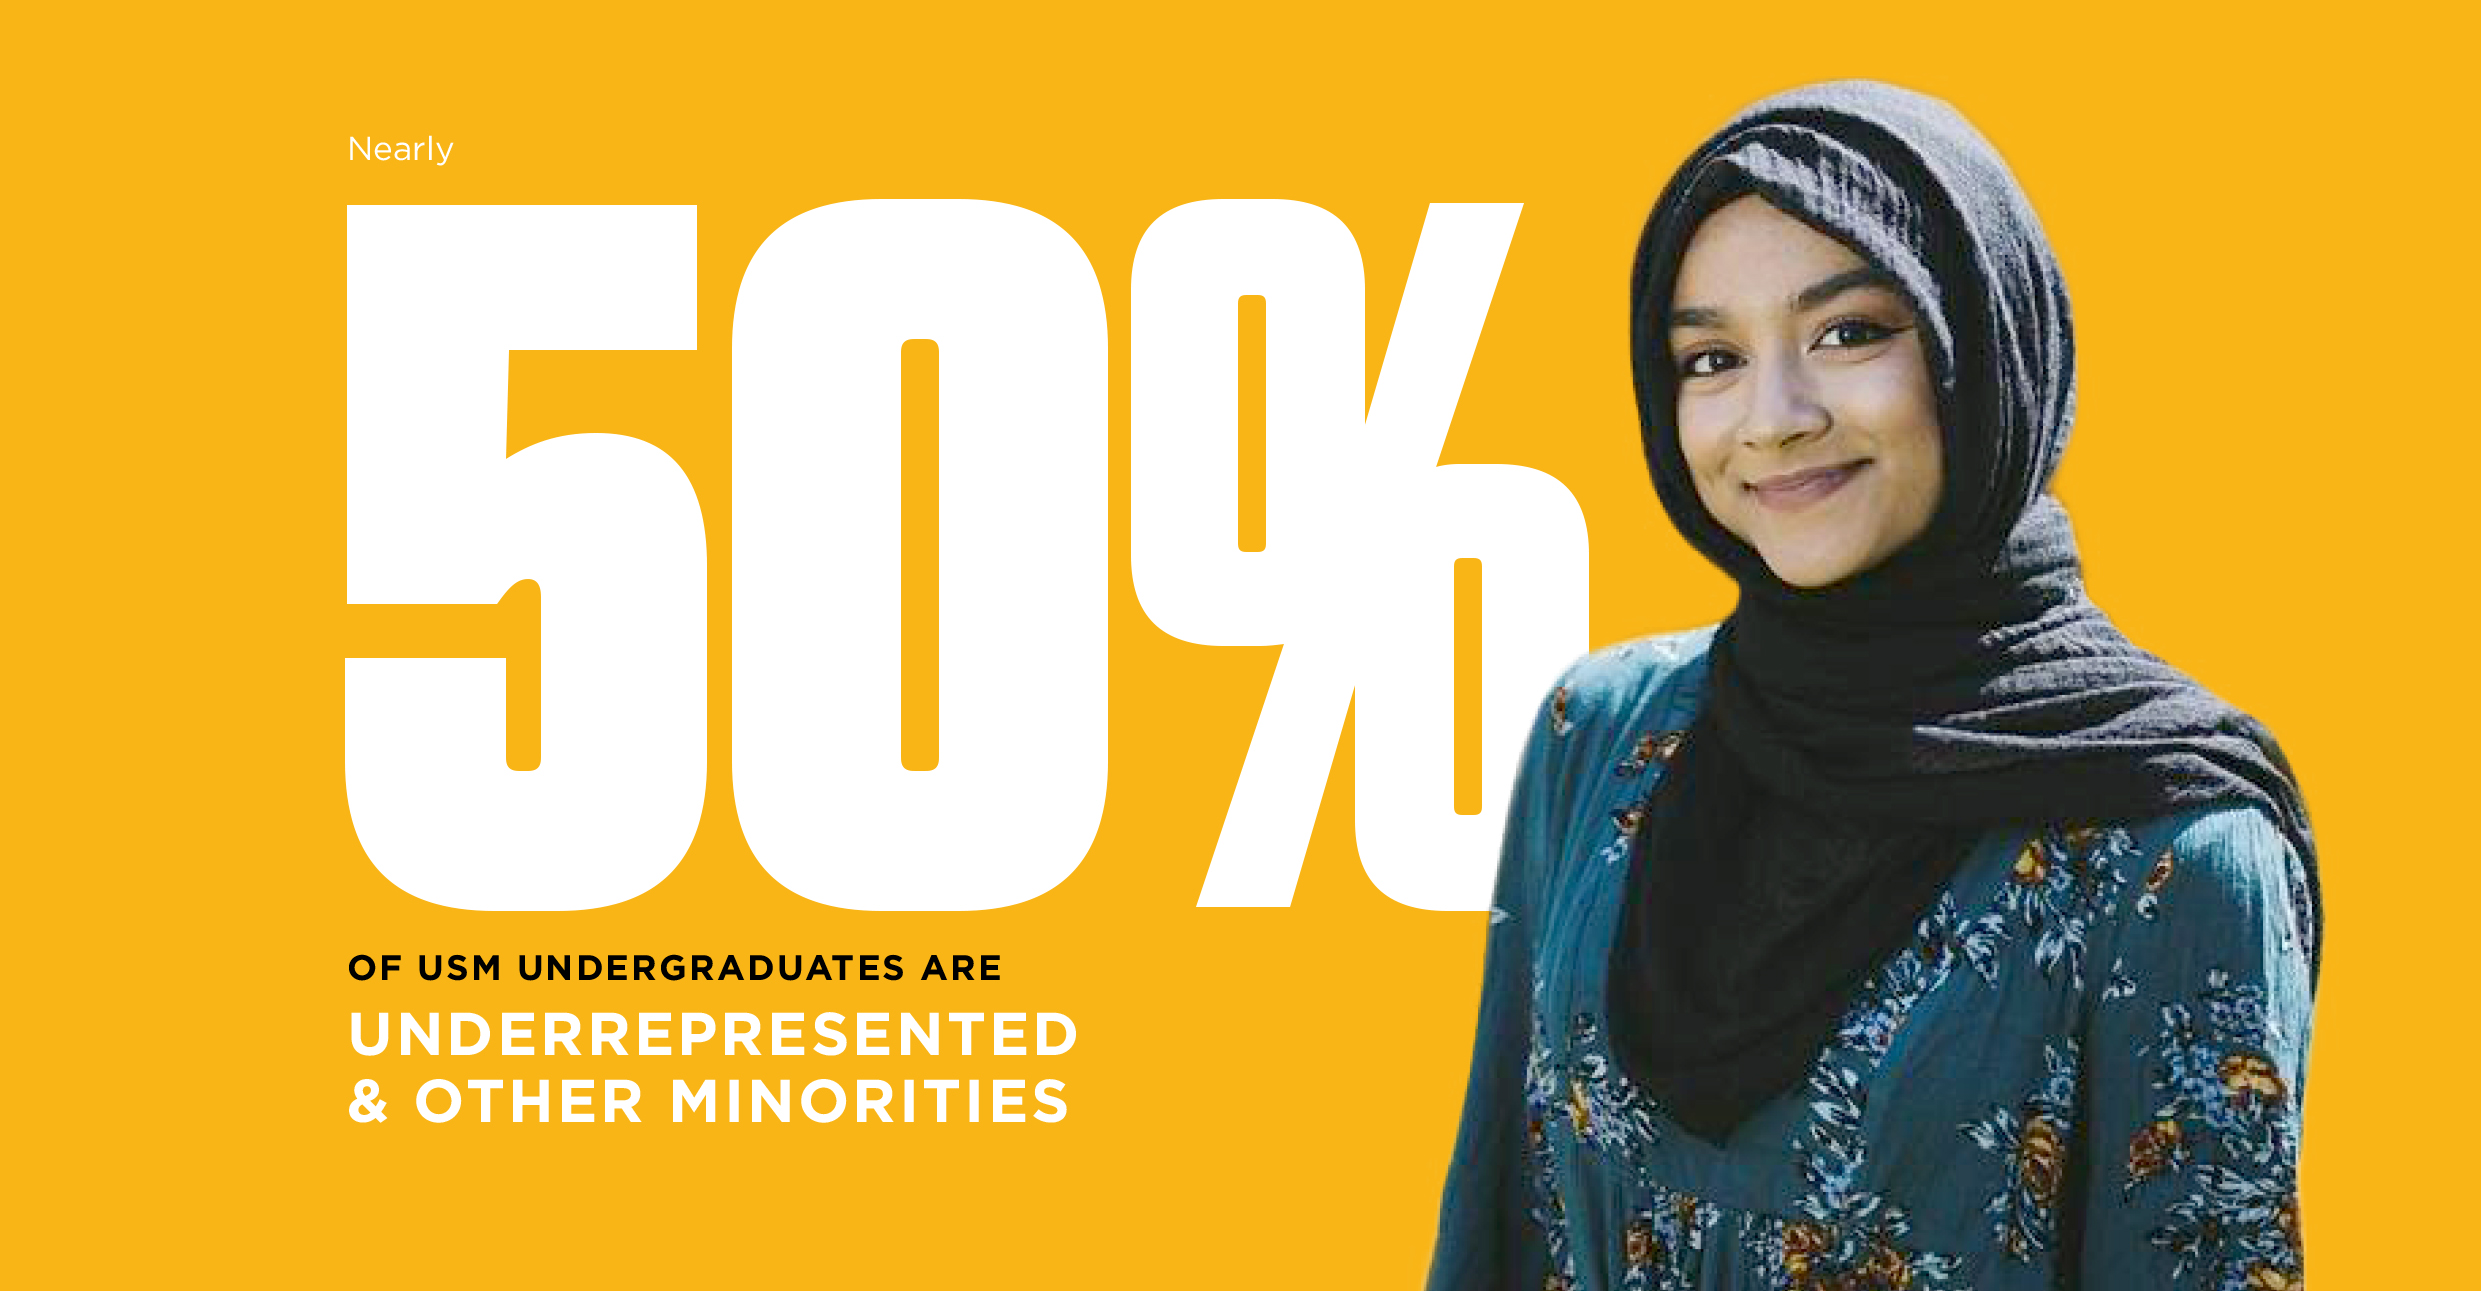 nearly 50% of USM undergraduates are underrepresented and other minorities